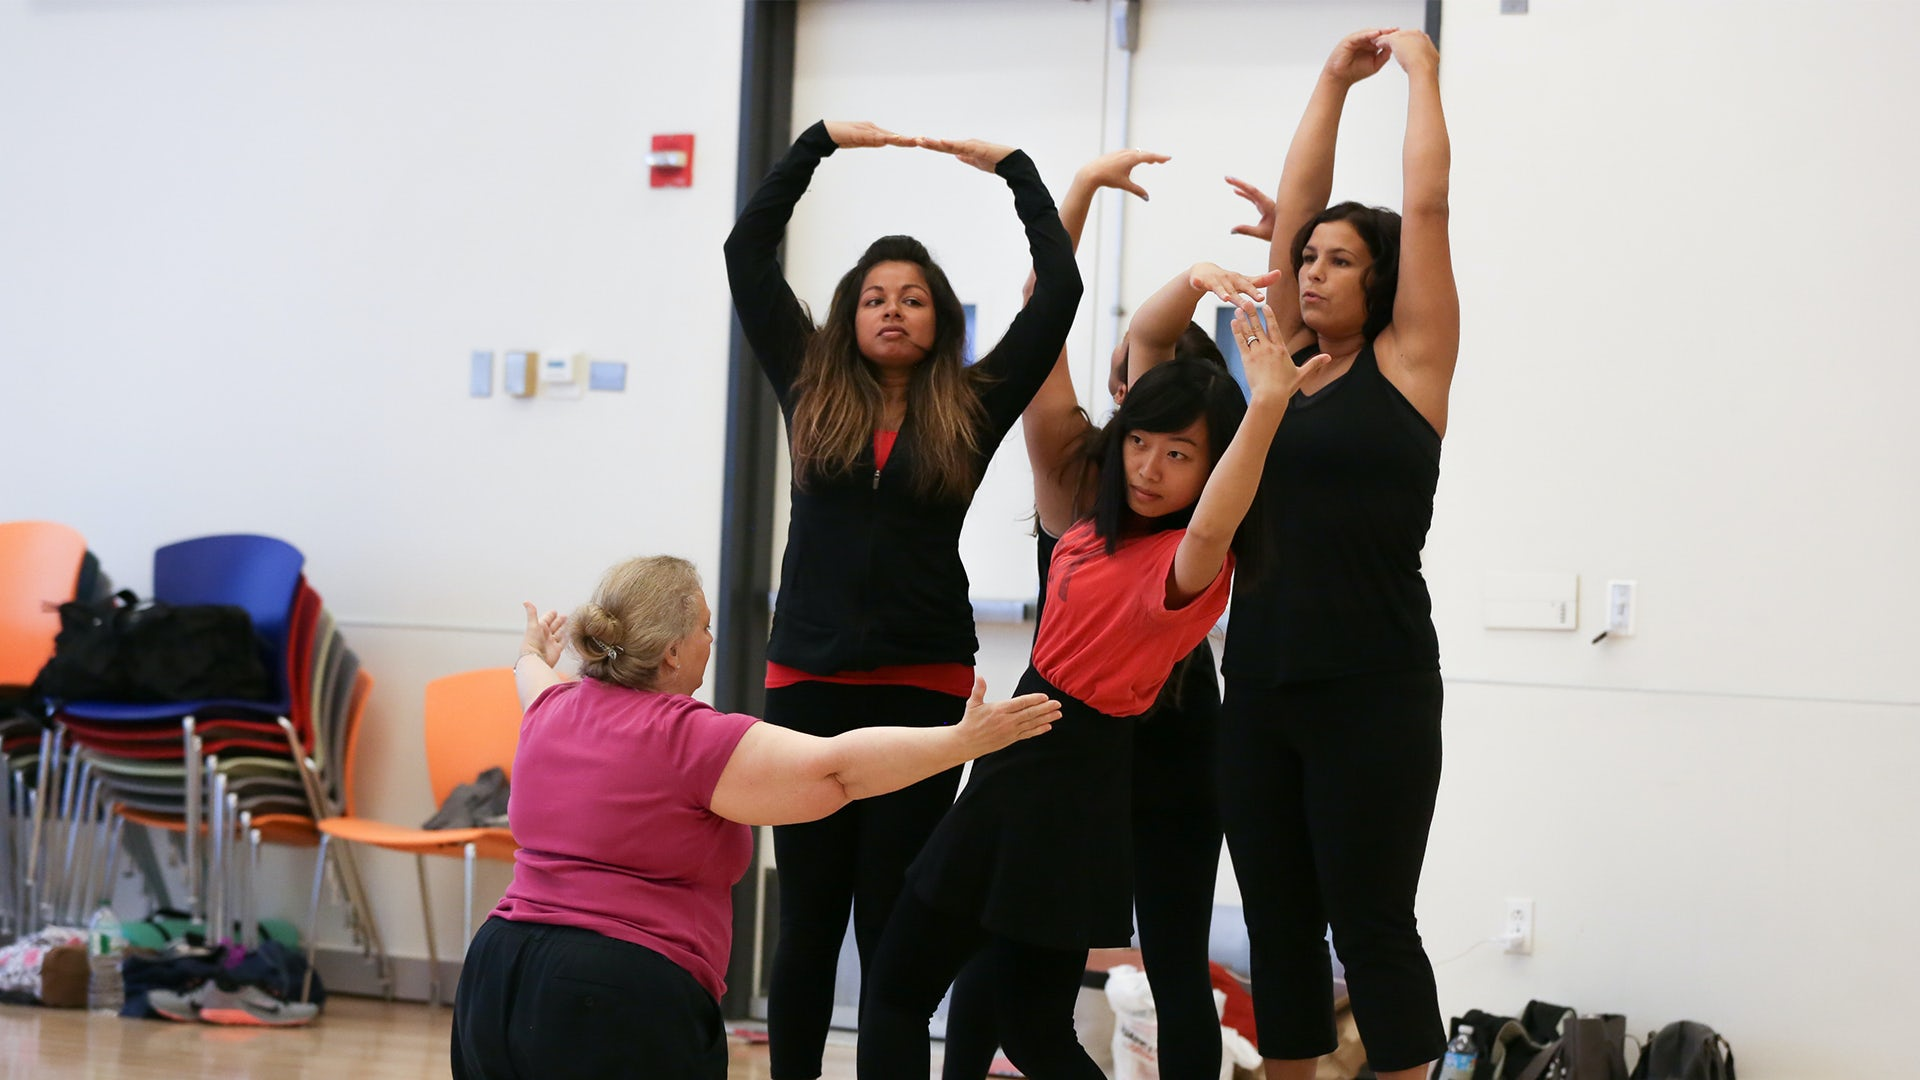 An educator instructs her colleagues to pose during a dance Professional Development workshop.